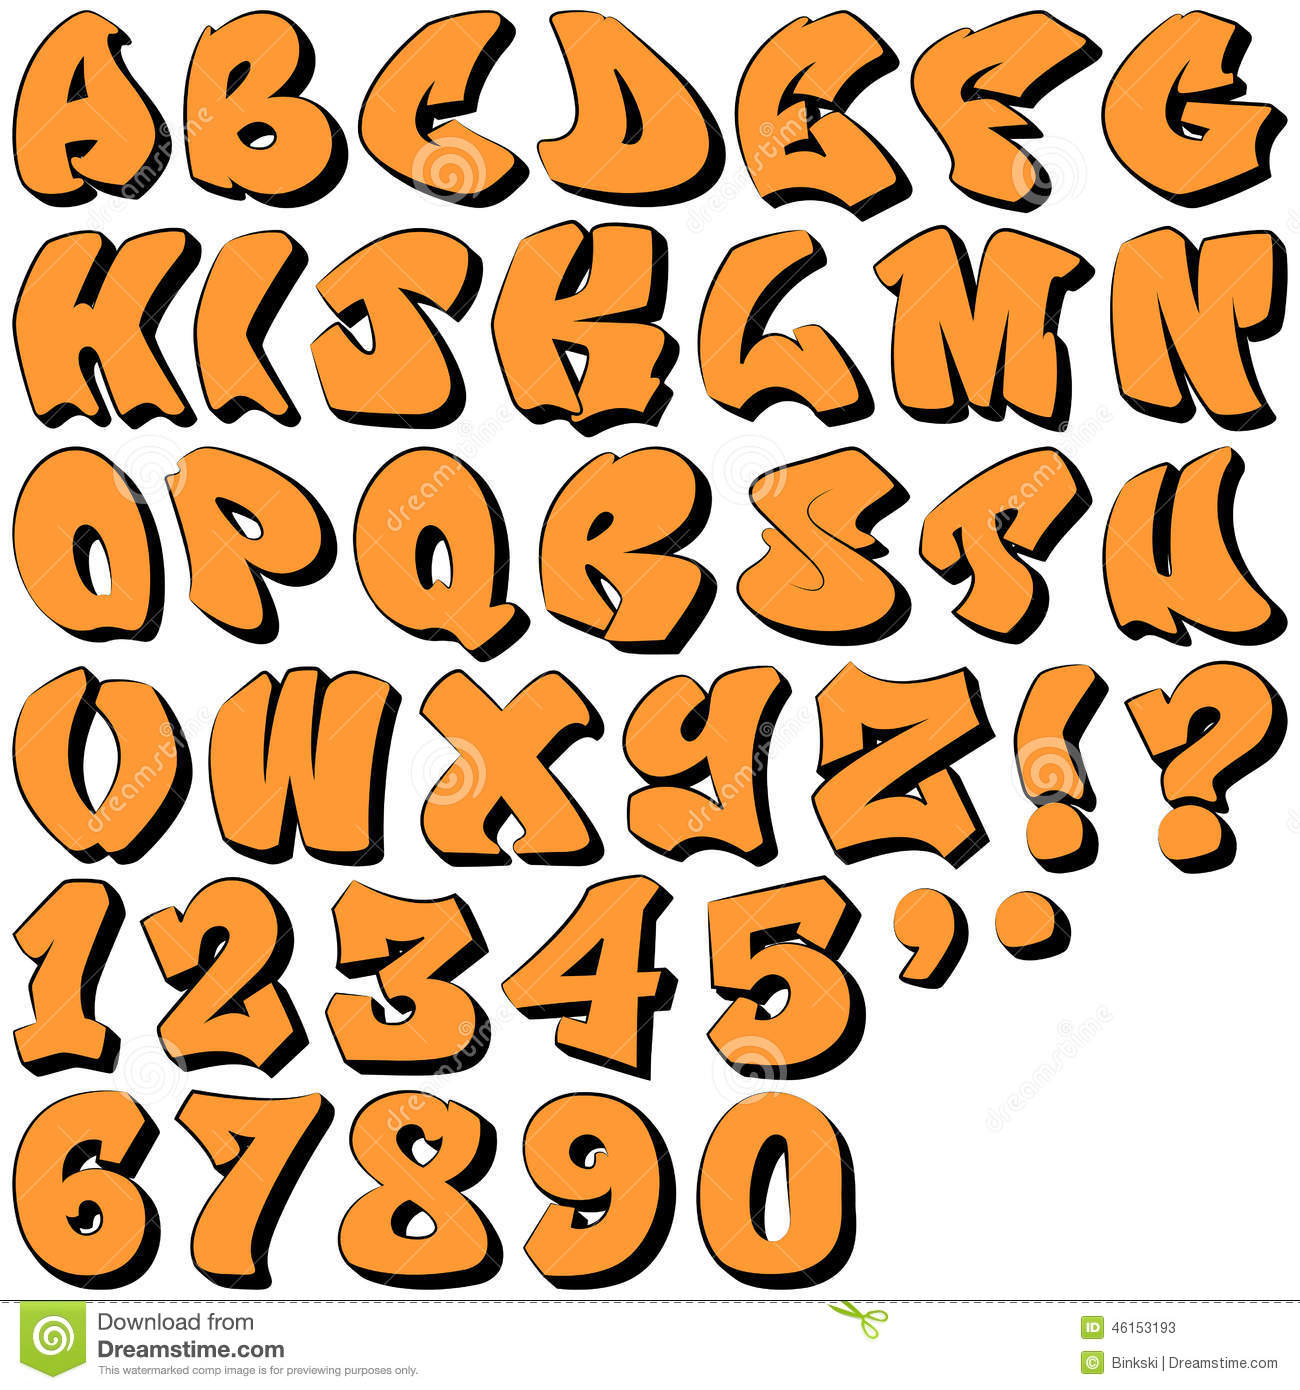 Graffiti Letters And Numbers Stock Vector Illustration Of Grunge